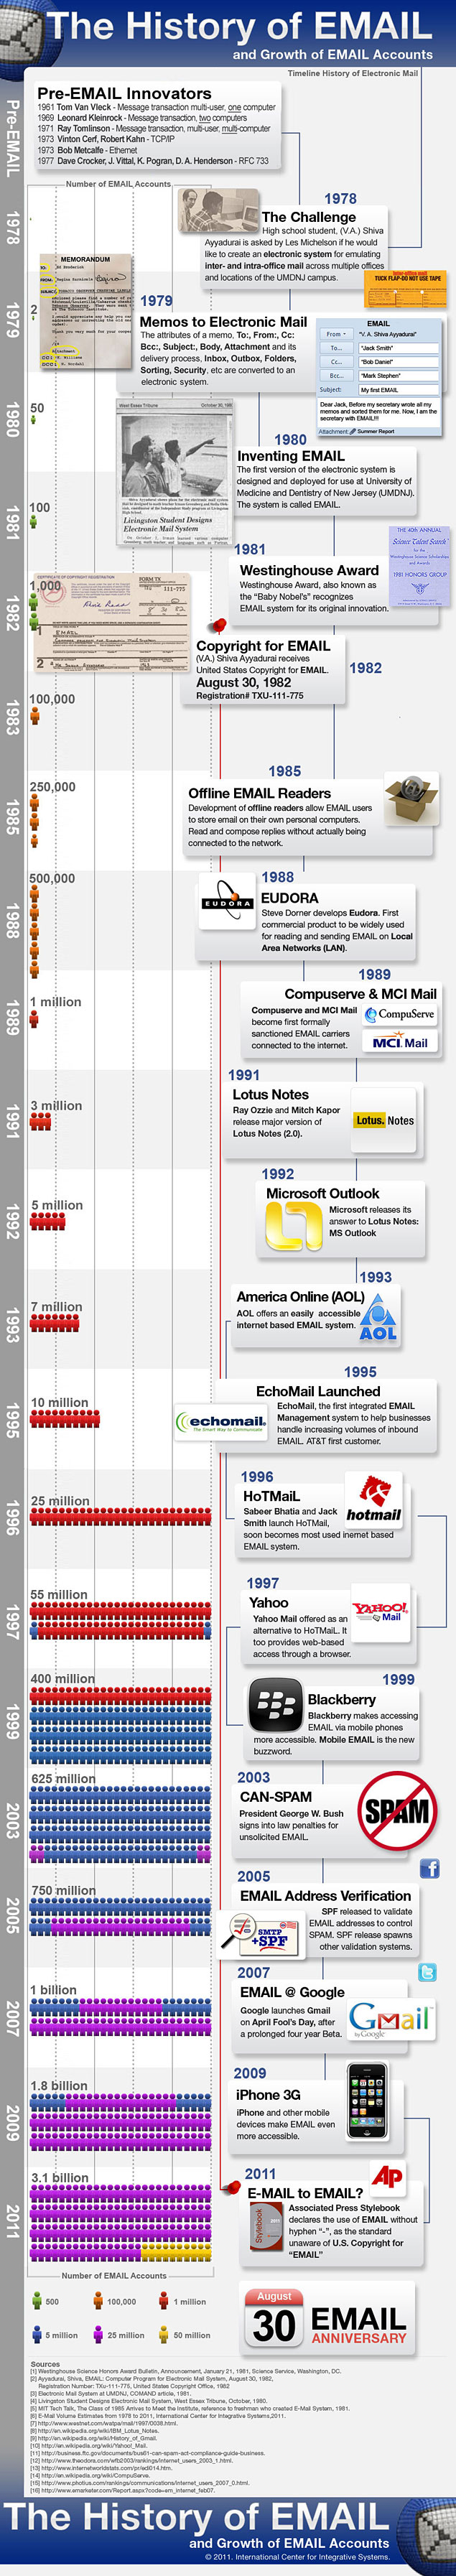 Email development timeline